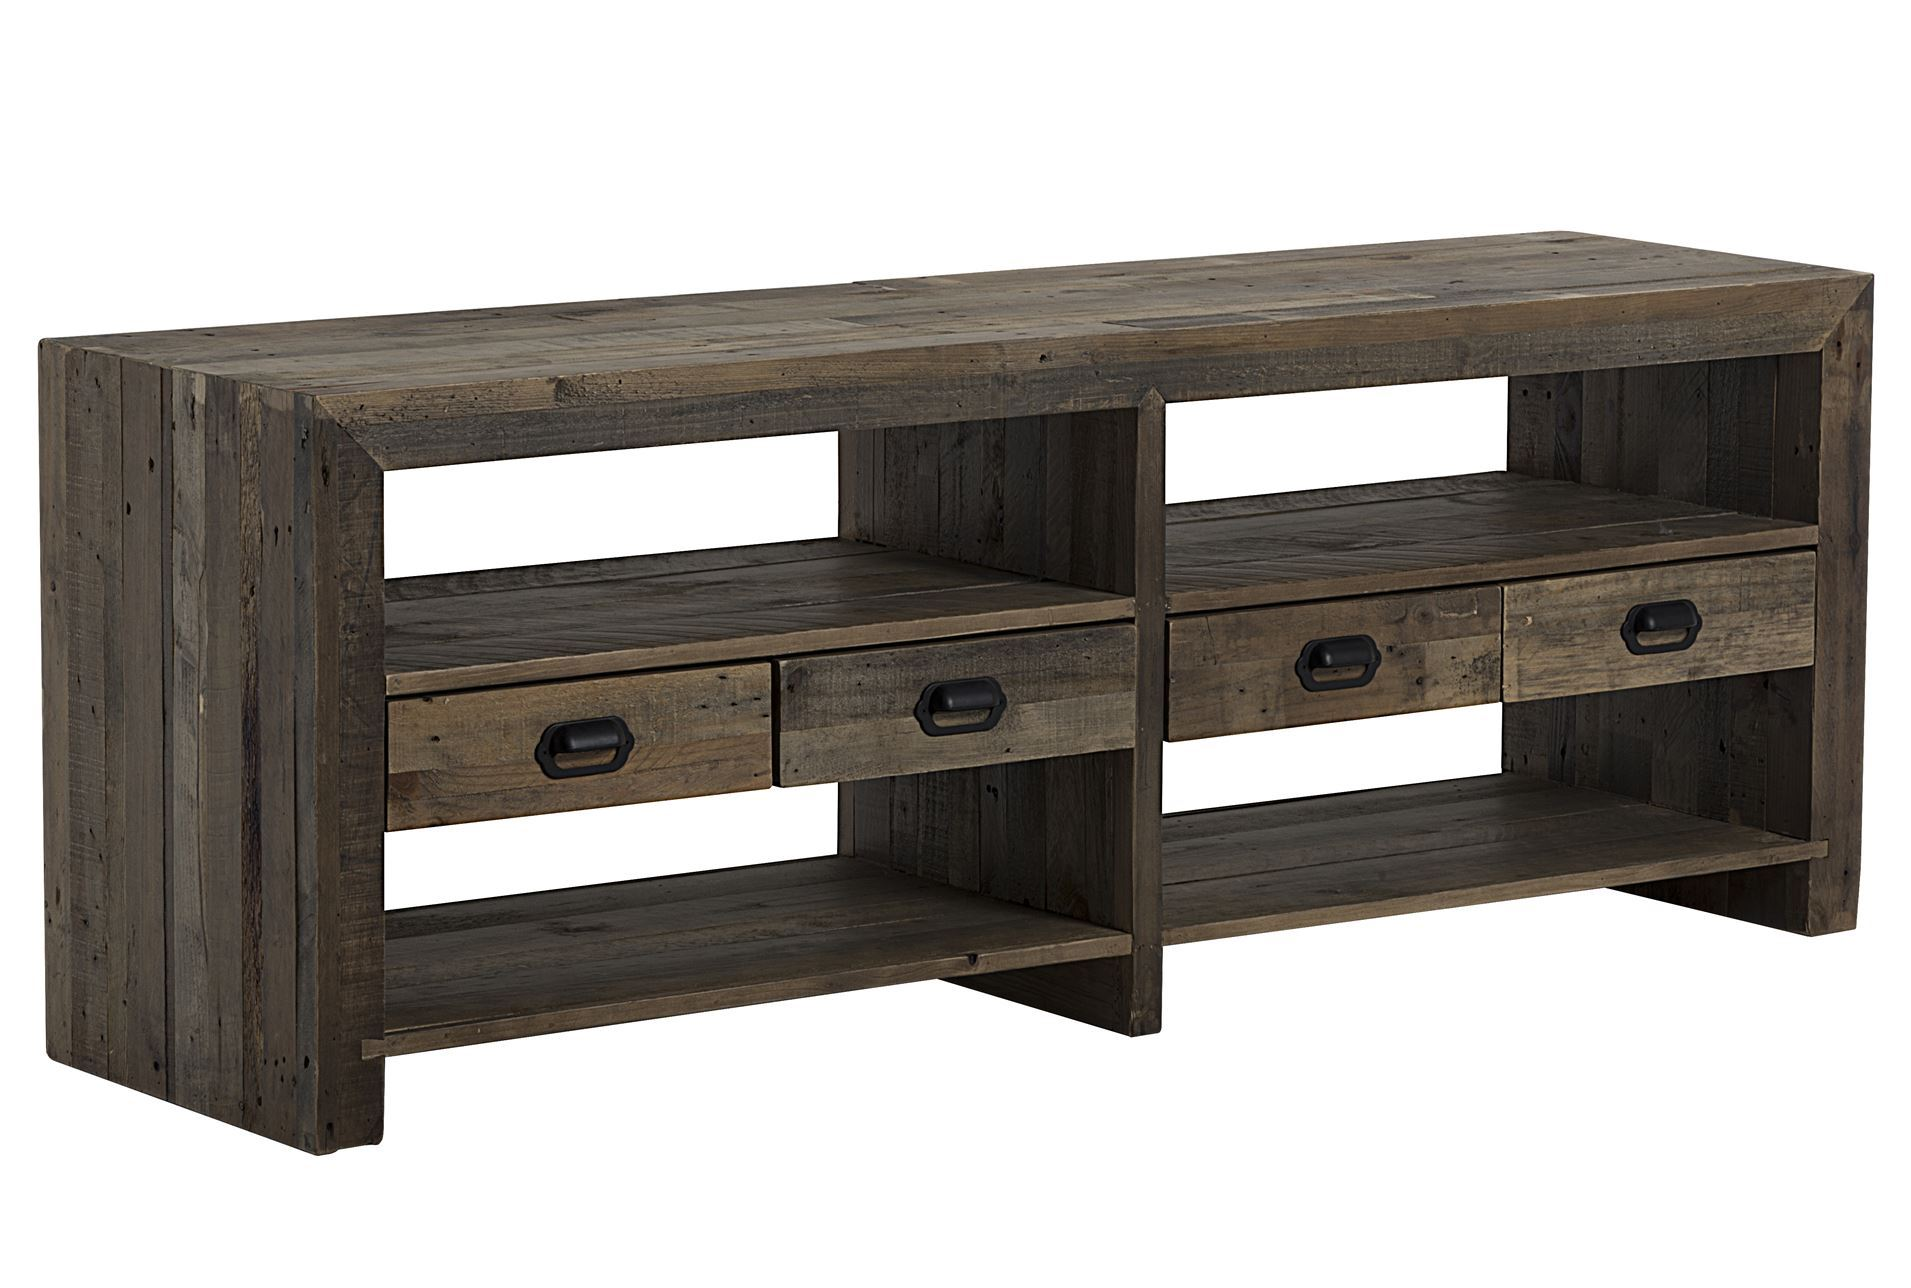 Reclaimed wood living spaces for 70 inch console table